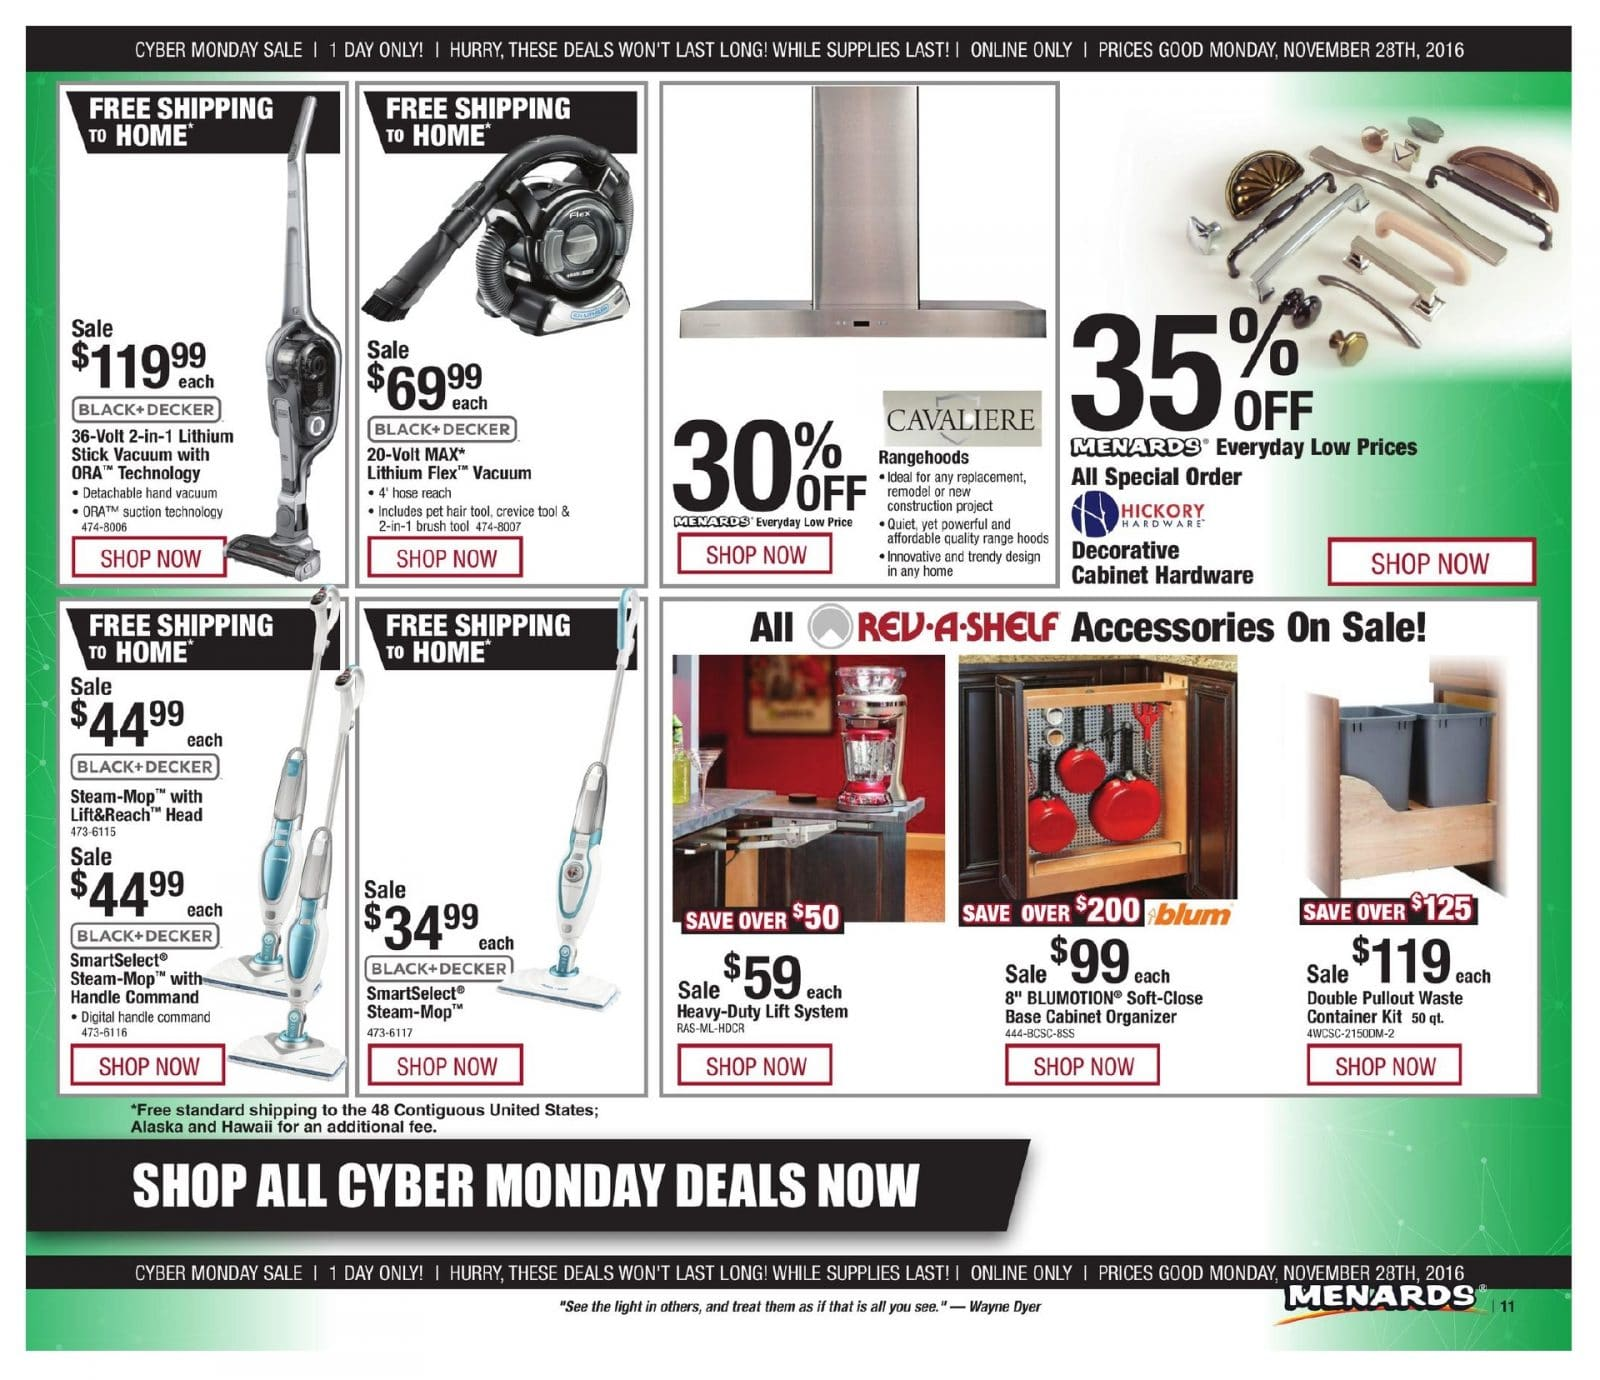 Mark your calendar because the Menards Cyber Monday sale goes live on Monday, Nov. Menards Cyber Monday Coupons. Menards is like most retailers on Cyber Monday because it doesn't usually offer special coupons and promo codes. However, you can take advantage of /5().